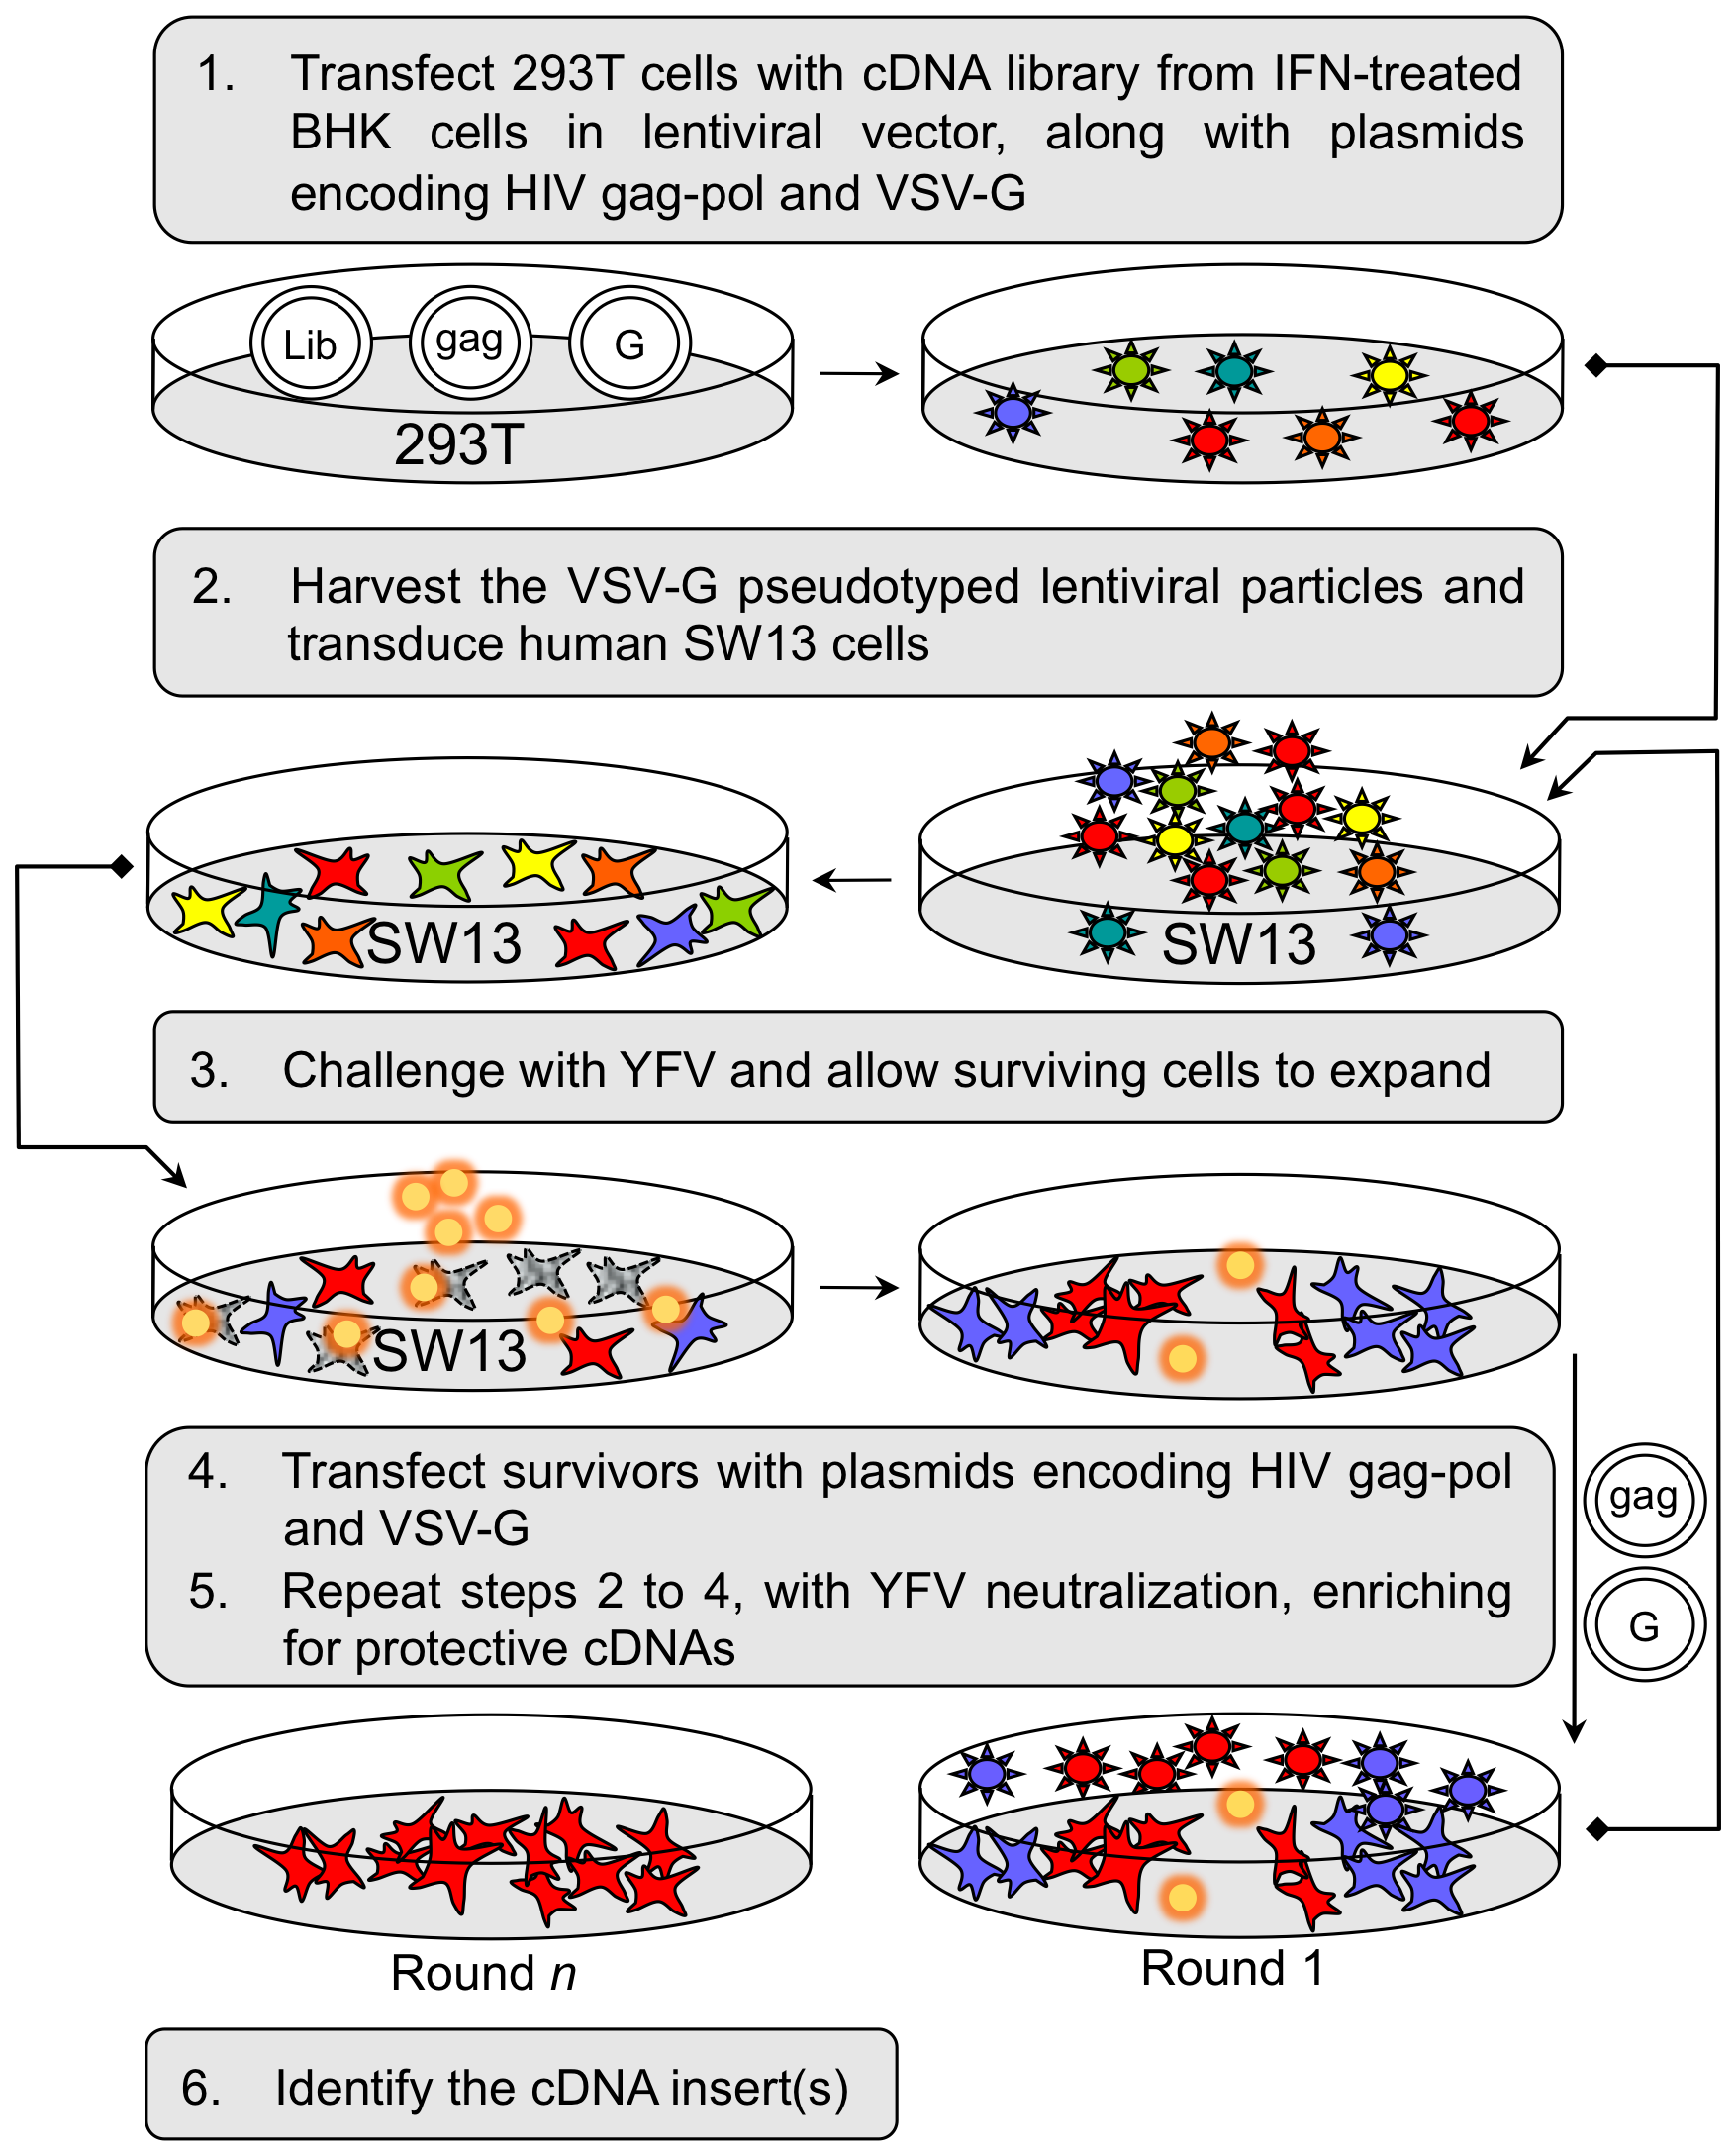 Selection and identification of host factors conferring protection against YFV-induced cell death.